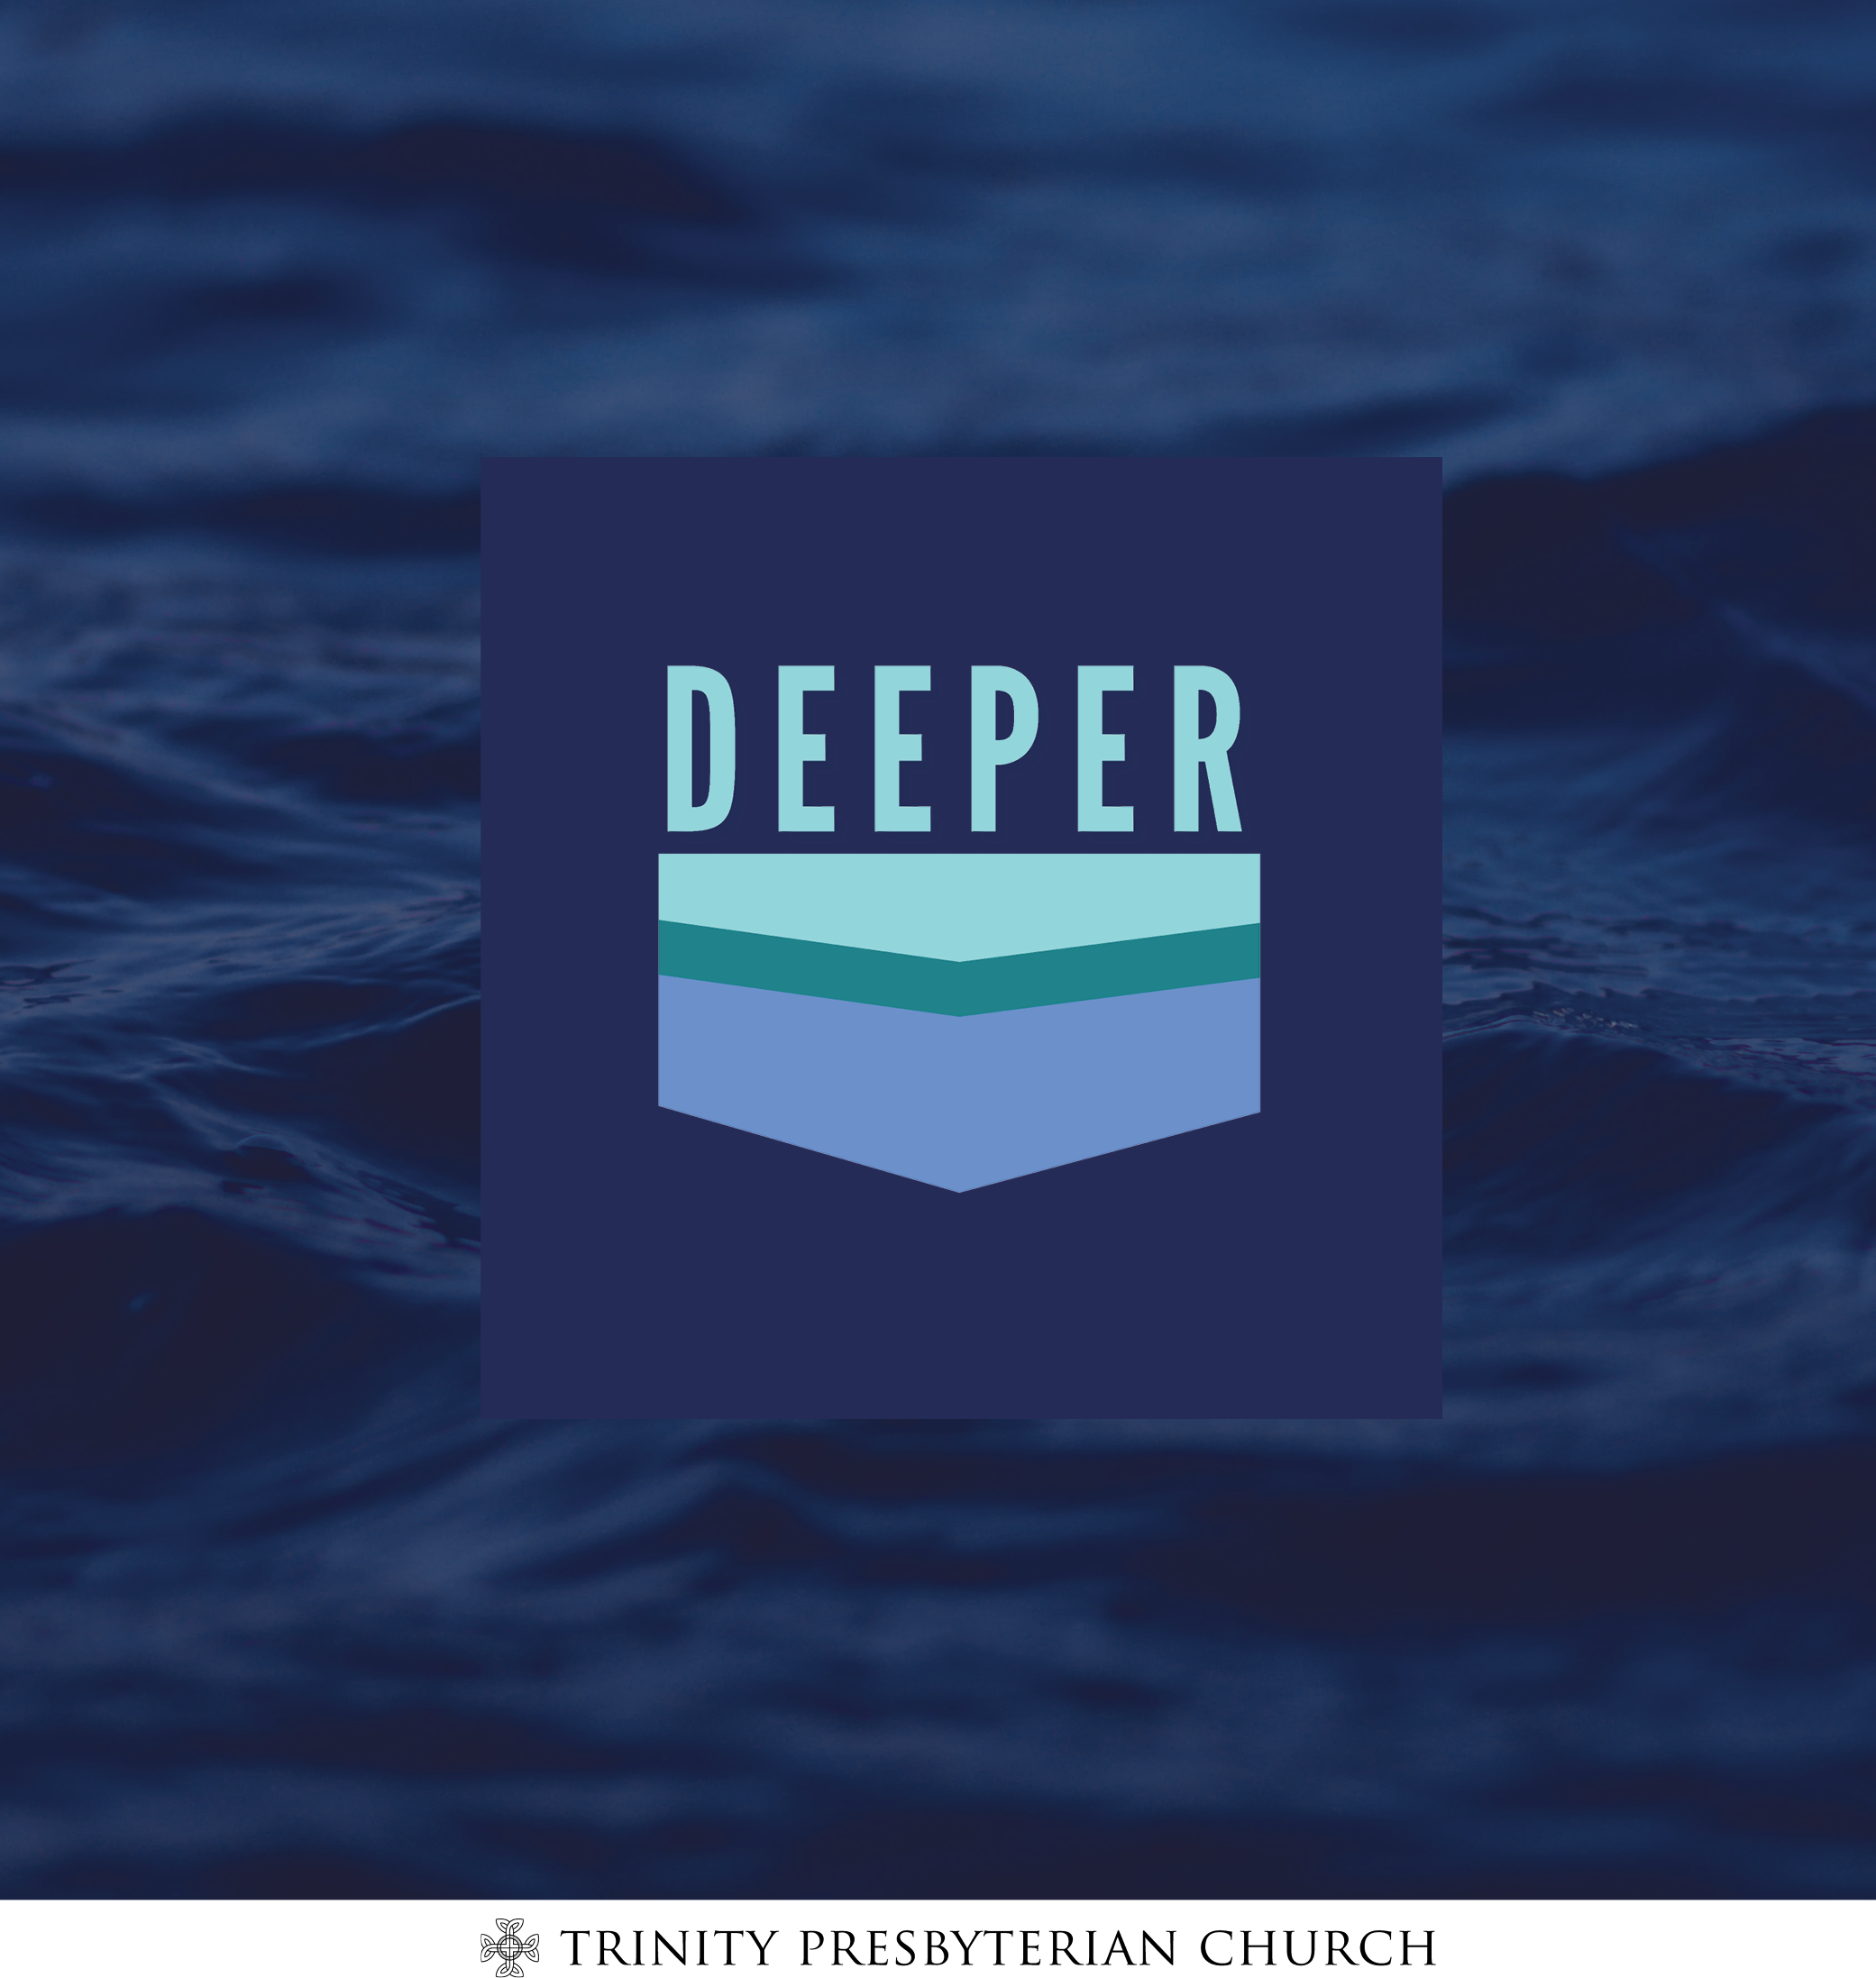 DEEPER-anchor cover image.png